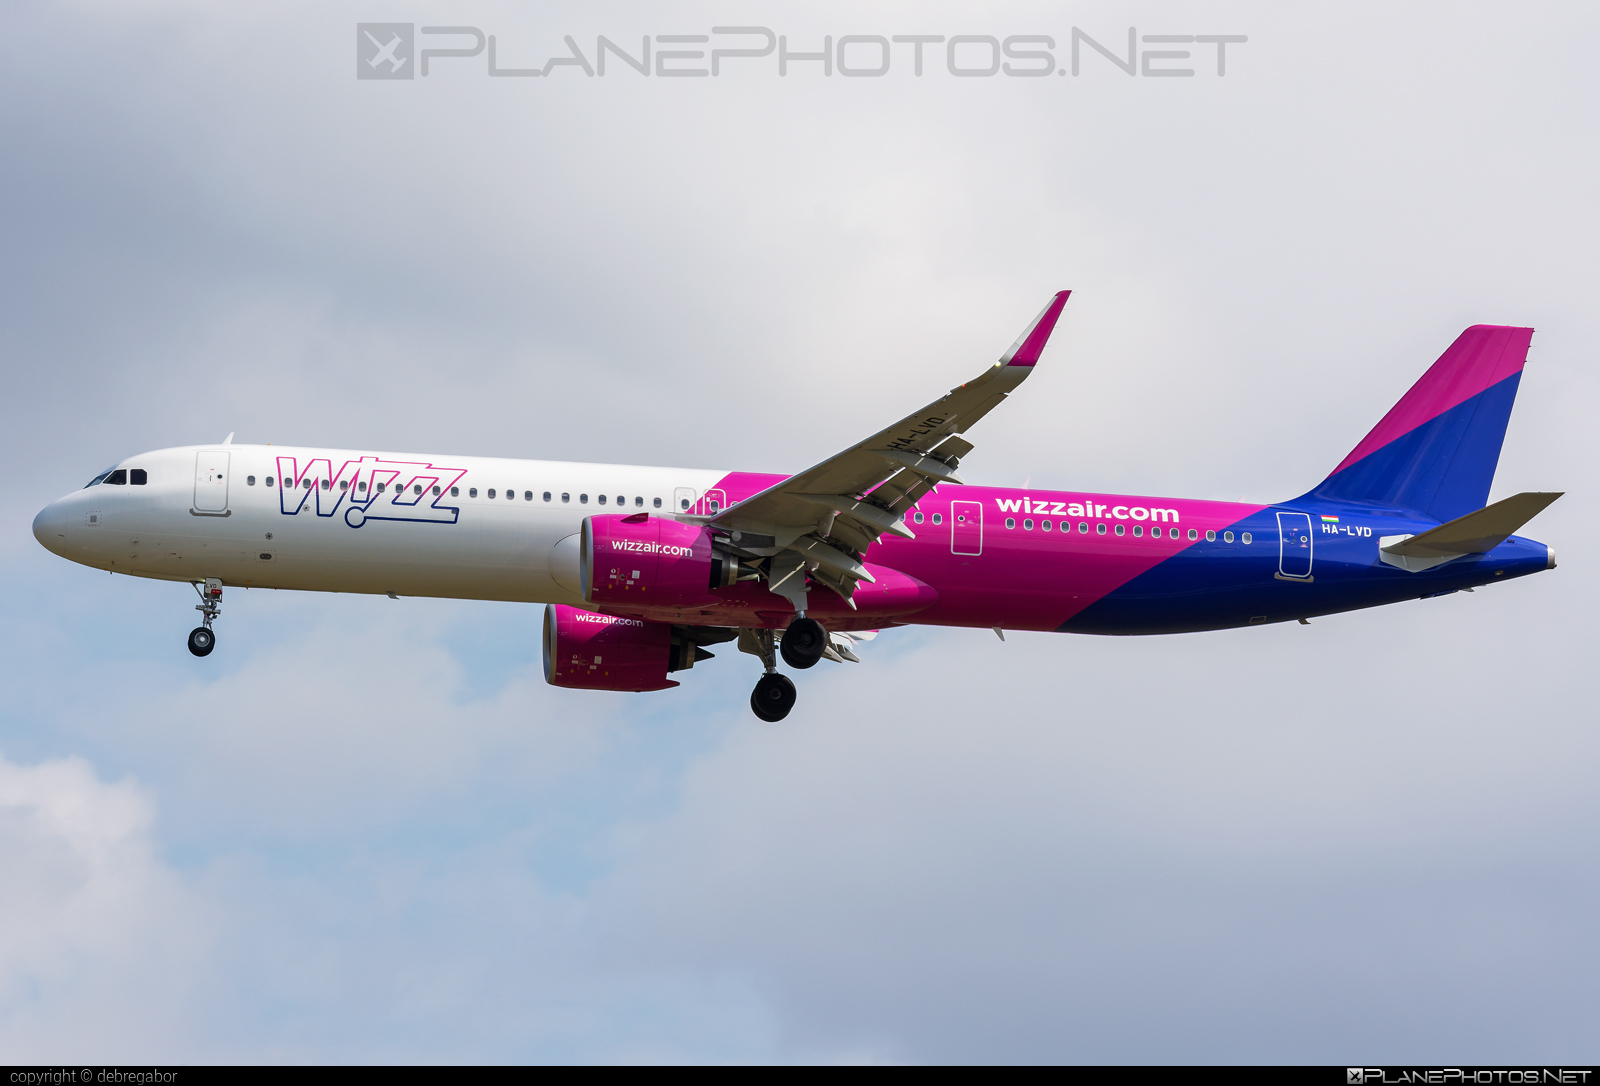 Airbus A321-271NX - HA-LVD operated by Wizz Air #a320family #a321 #a321neo #airbus #airbus321 #airbus321lr #wizz #wizzair